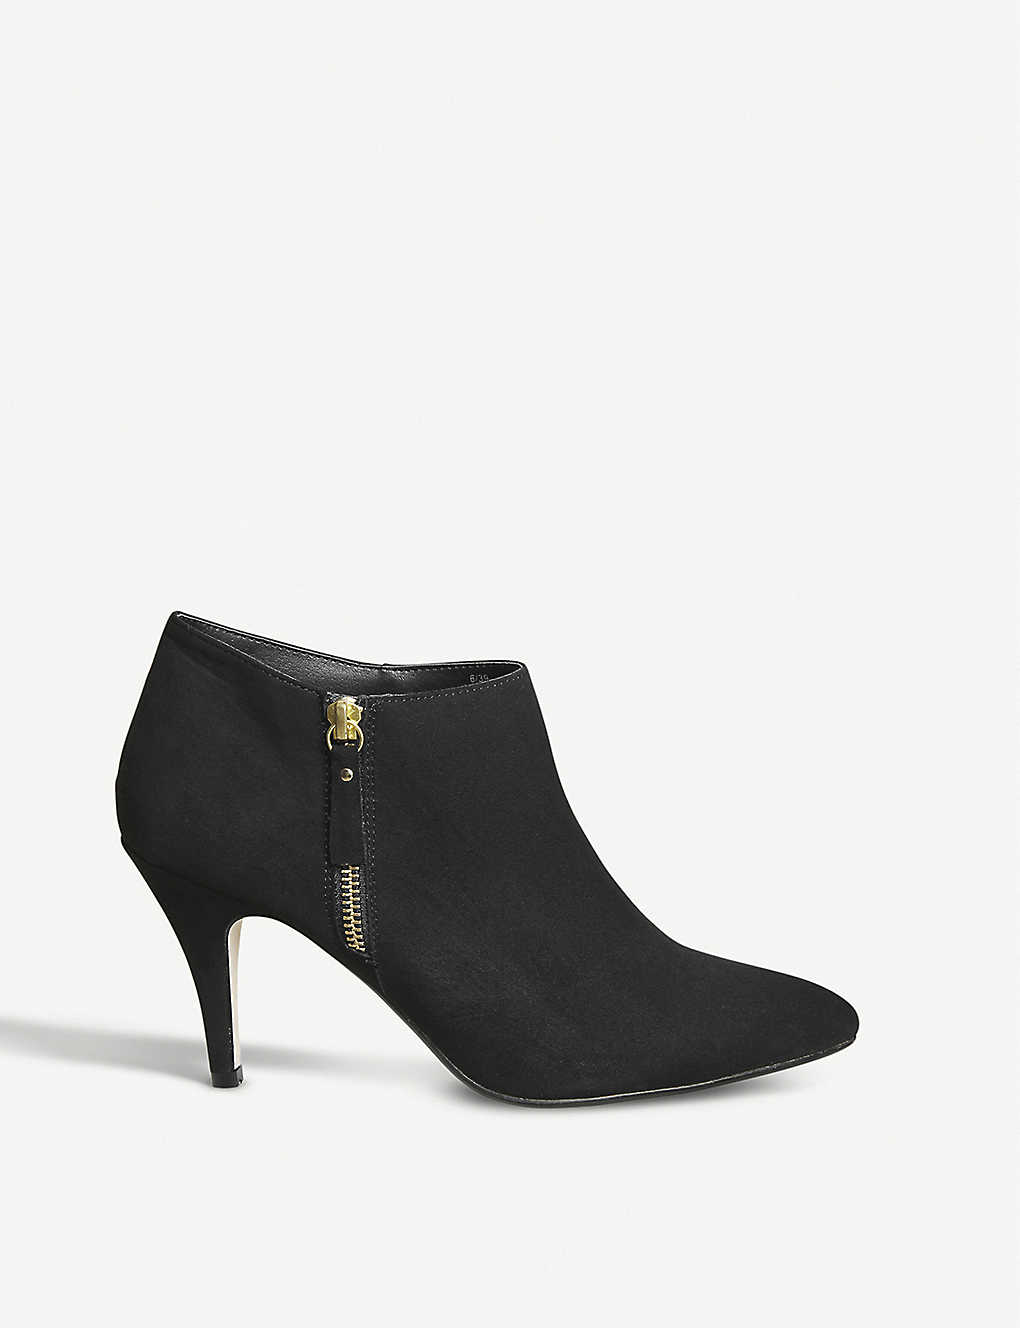 OFFICE - May zipped faux-suede ankle boots  a1df5990a9f4